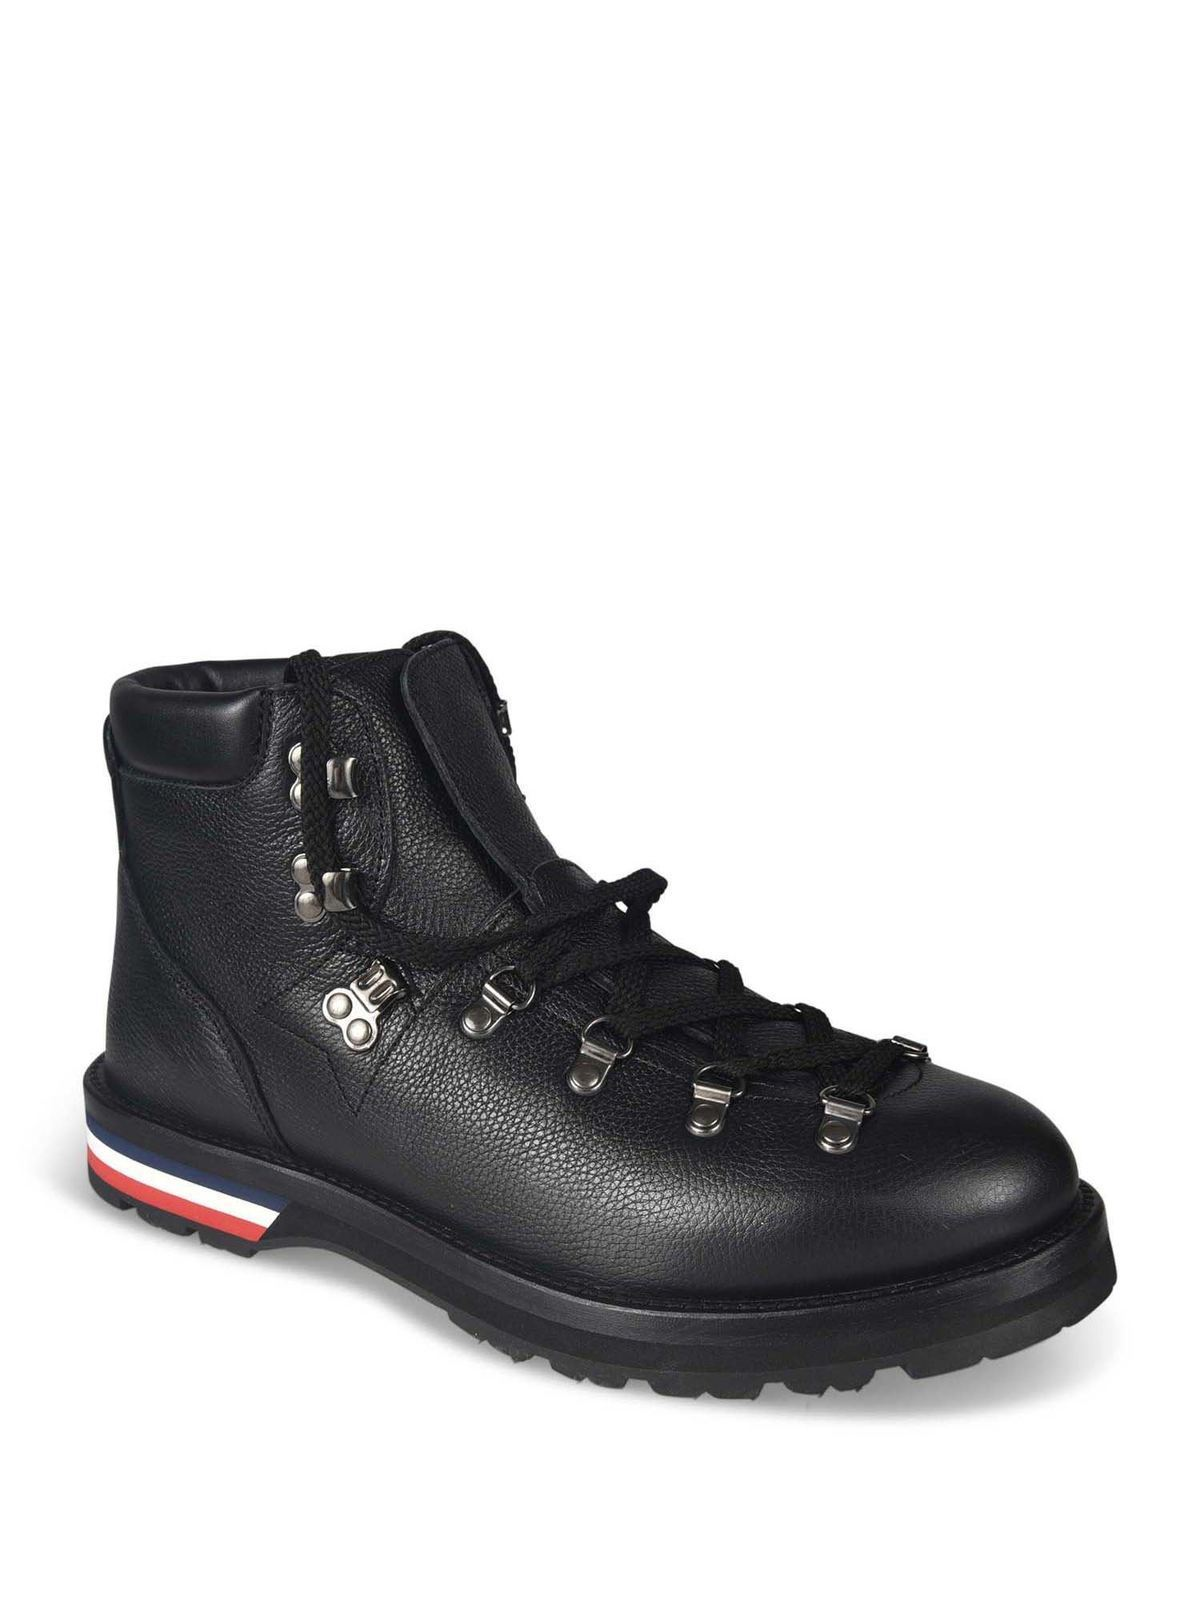 Moncler - Peak ankle boots in black